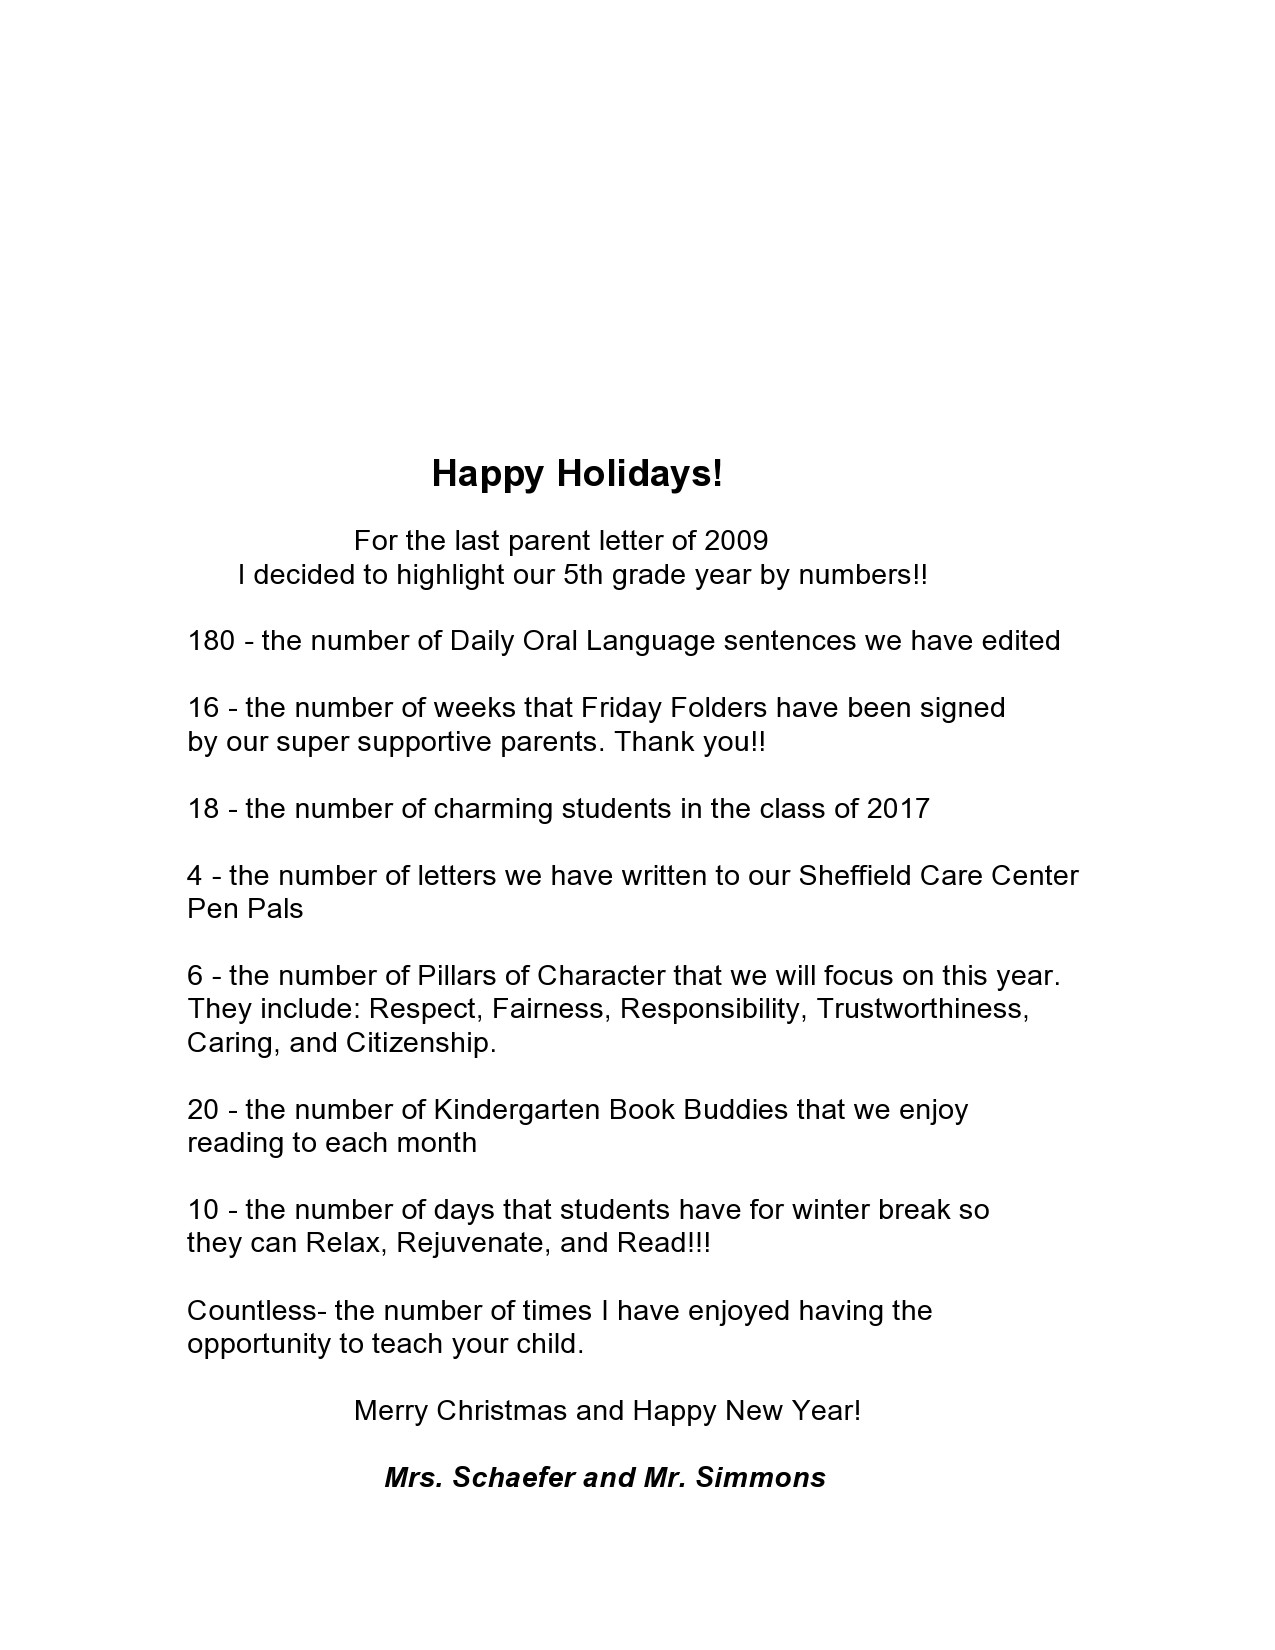 Free christmas letter template 46